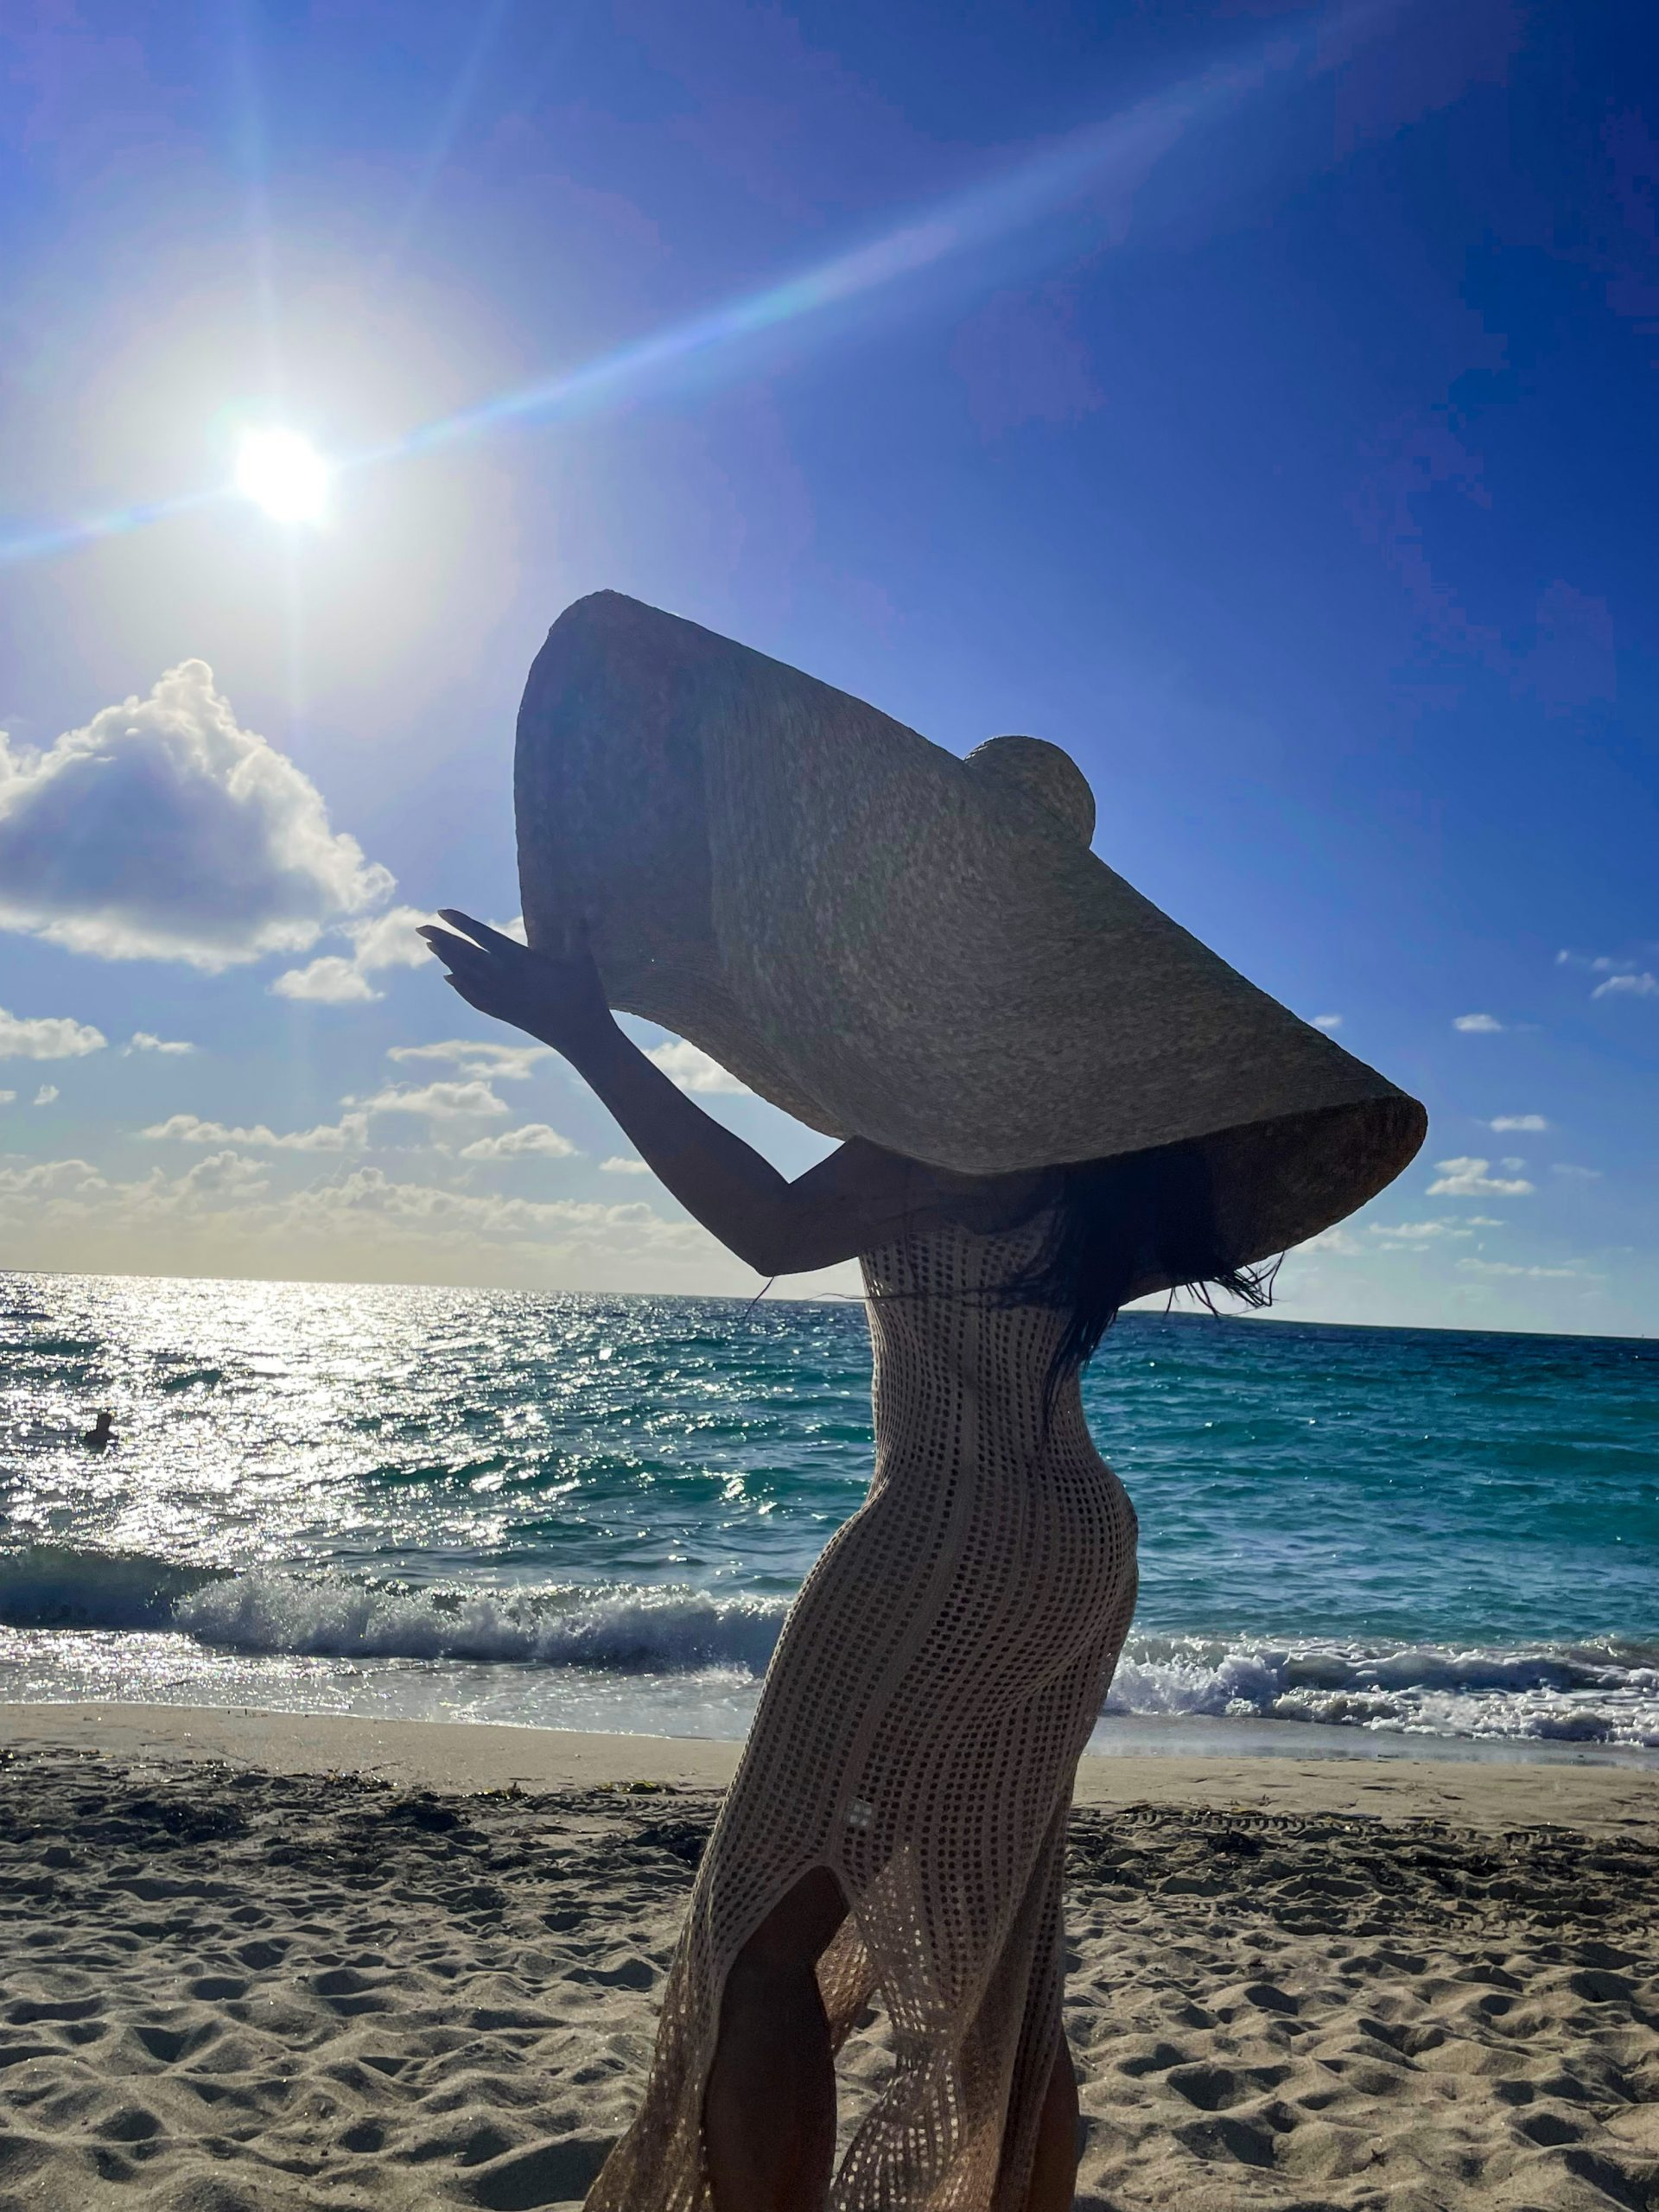 What Does The World's Largest Beach Hat Look Like